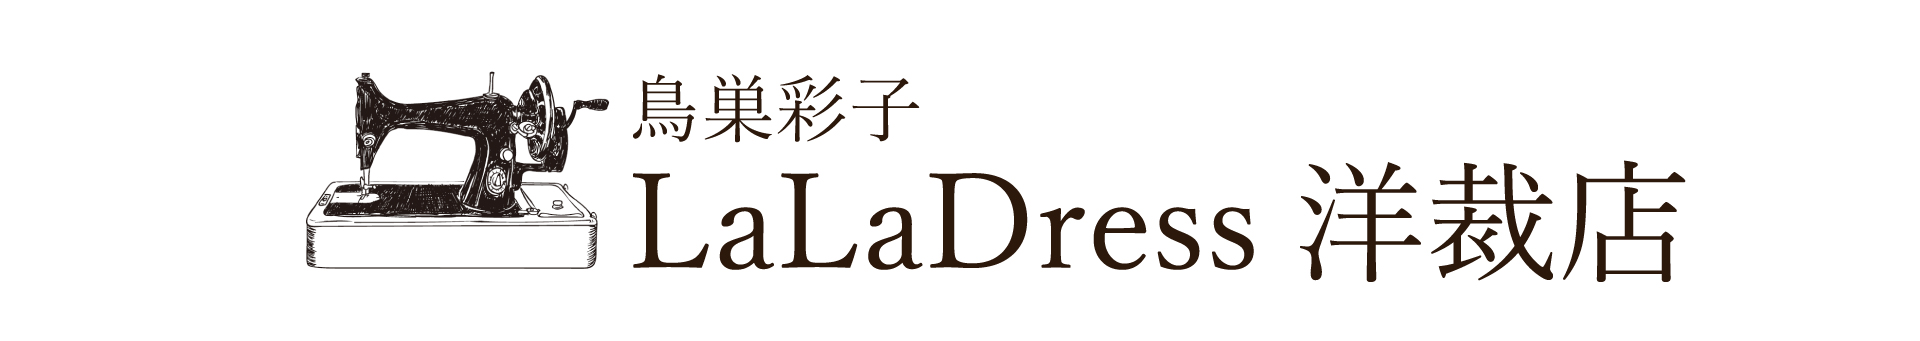 LaLaDress洋裁店